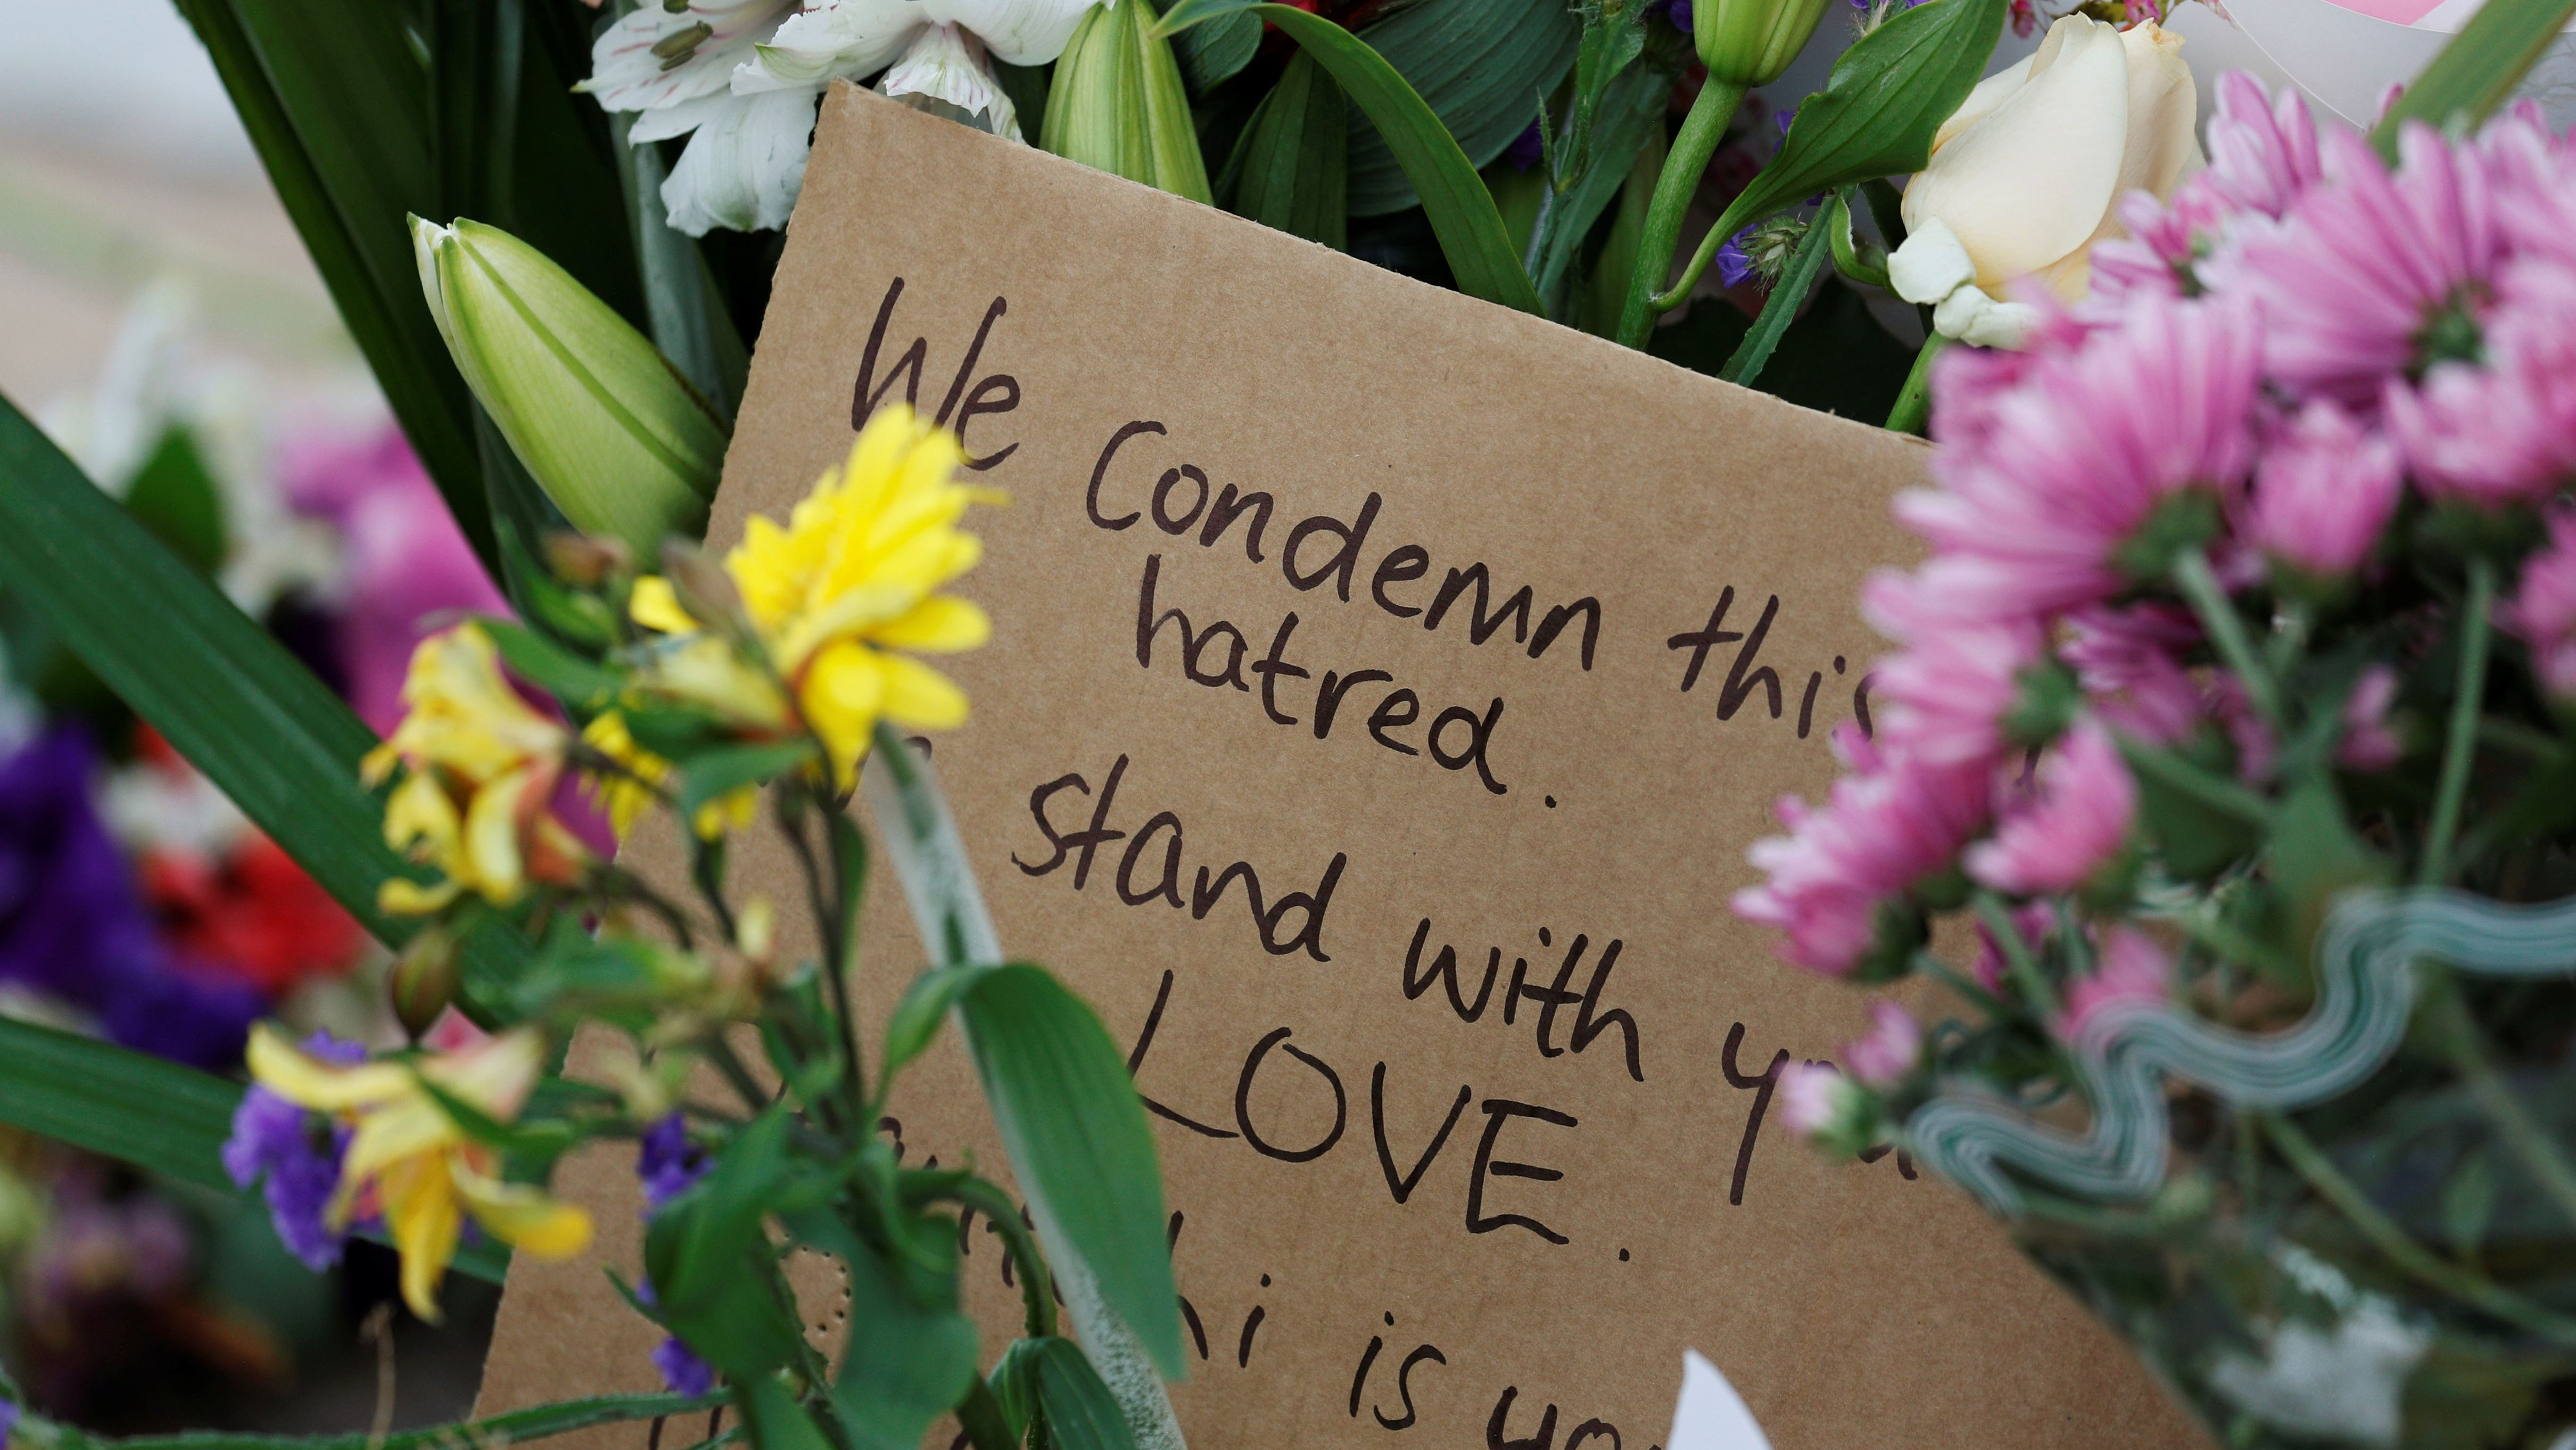 Flowers and signs are seen at a memorial as a tribute to victims of the mosque attacks, near a police line outside Masjid Al Noor in Christchurch, New Zealand,